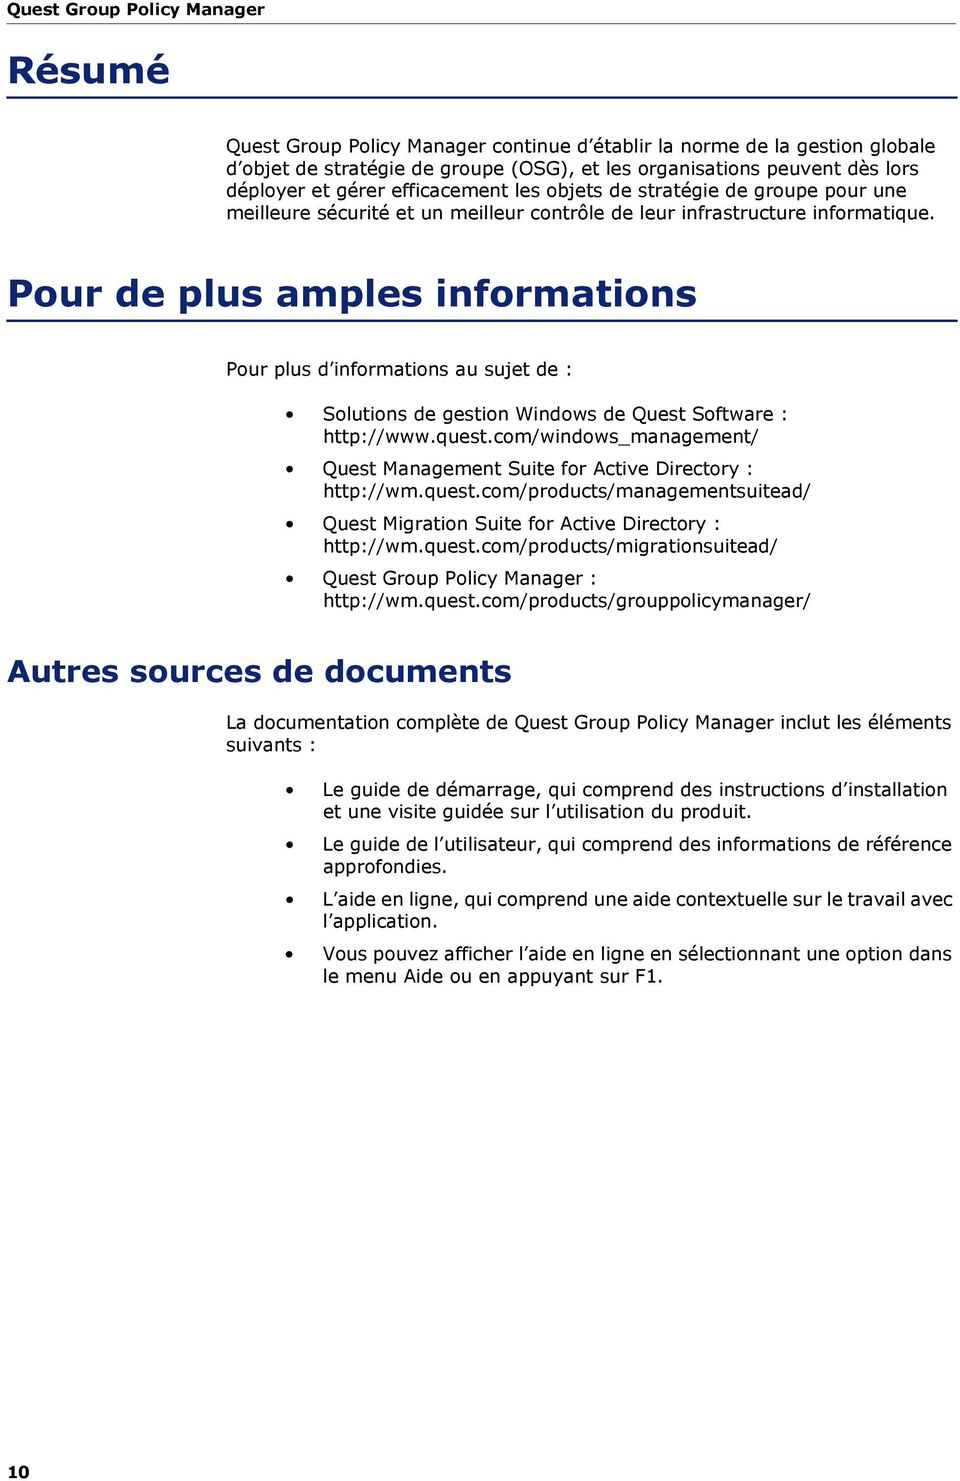 Pour de plus amples informations Pour plus d informations au sujet de : Solutions de gestion Windows de Quest Software : http://www.quest.